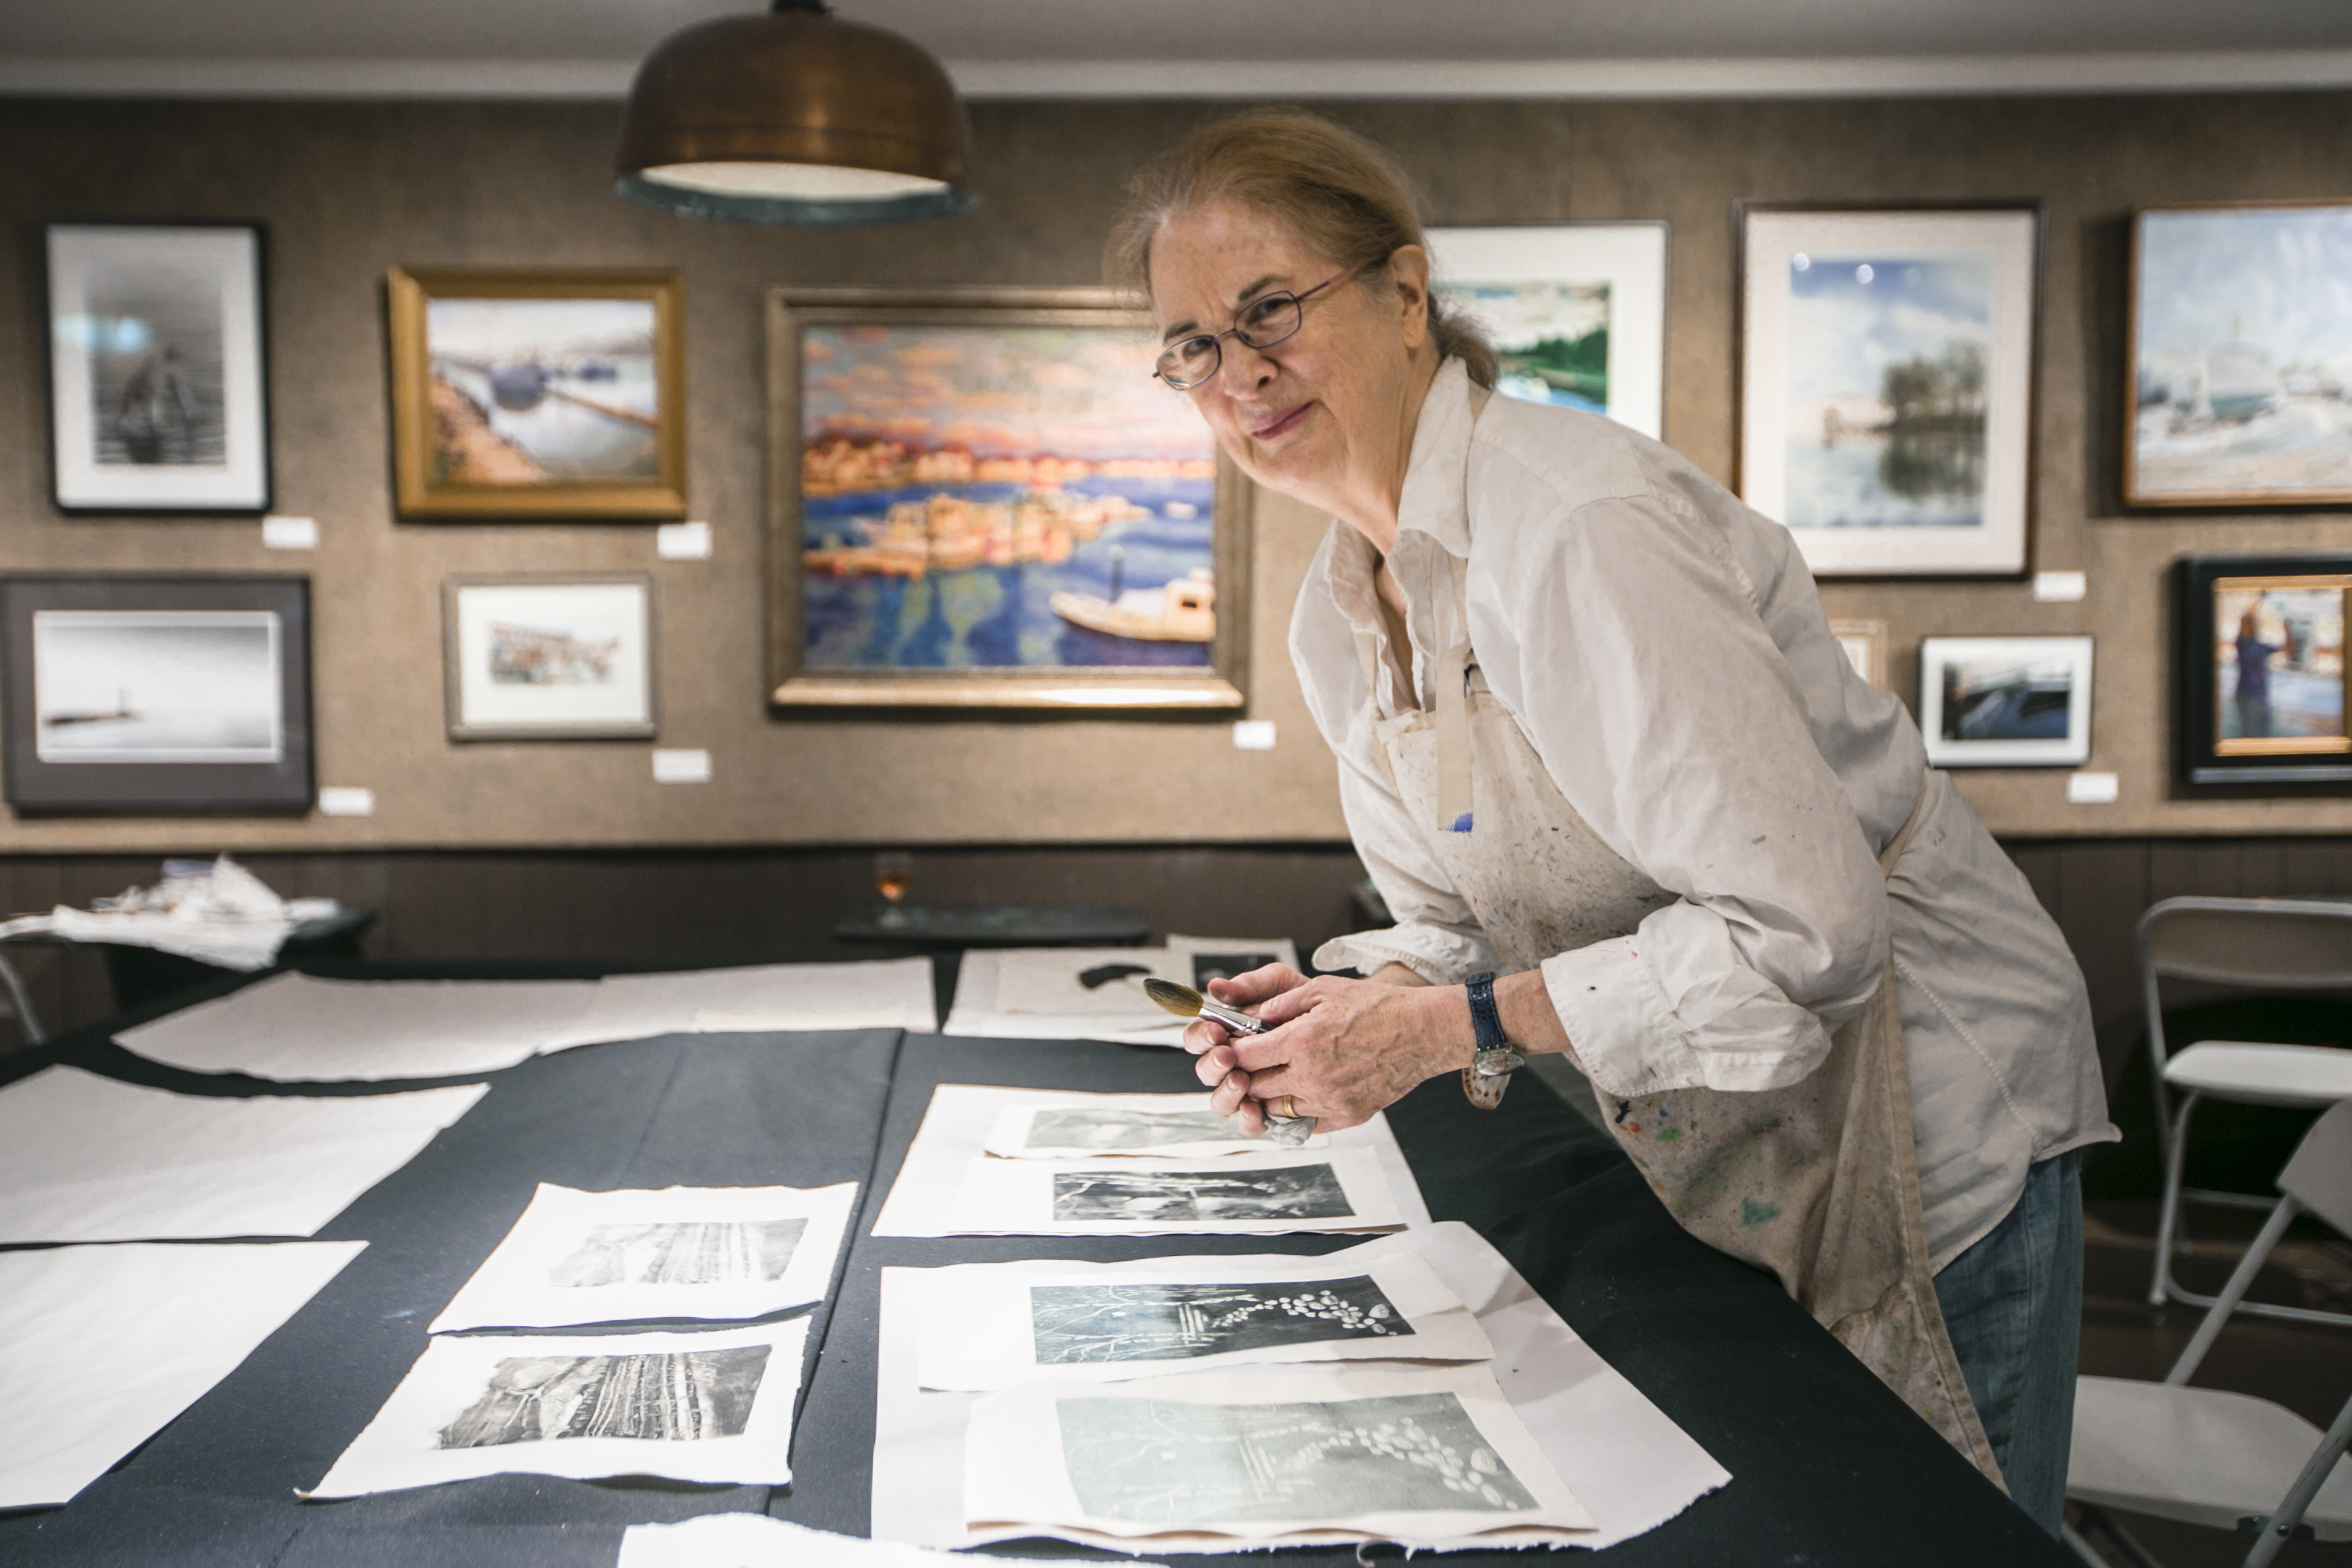 Annie Shaver-Crandell looks at her prints at the monotype party of the Salmagundi Club on July 12, 2016. (Samira Bouaou/Epoch Times)